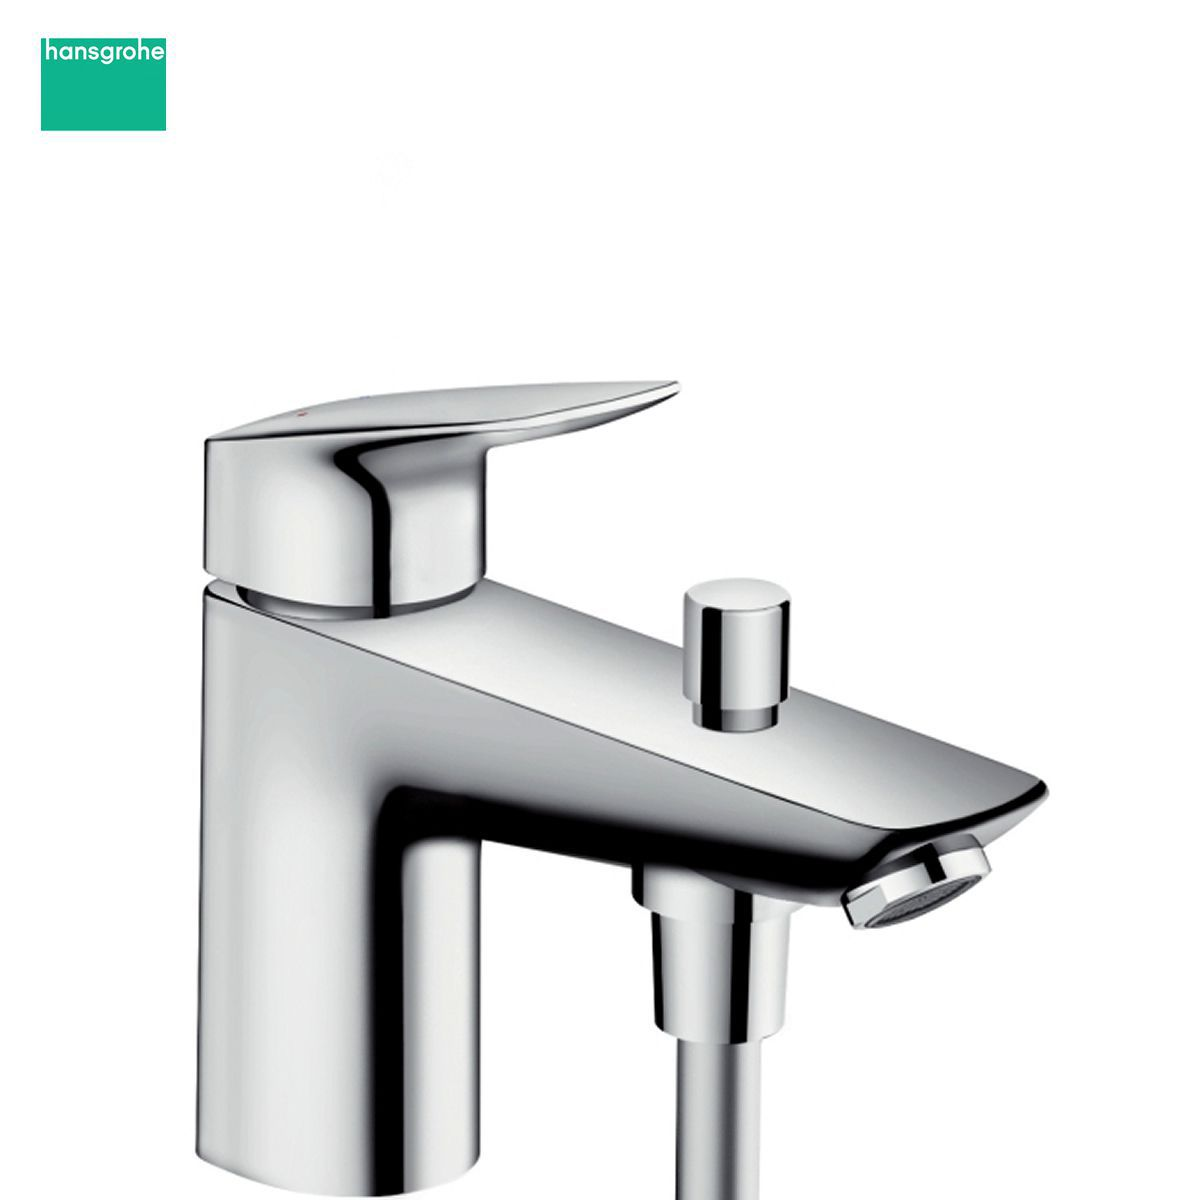 hansgrohe logis single lever bath tap with optional shower mixer hansgrohe logis single lever bath tap with optional shower mixer